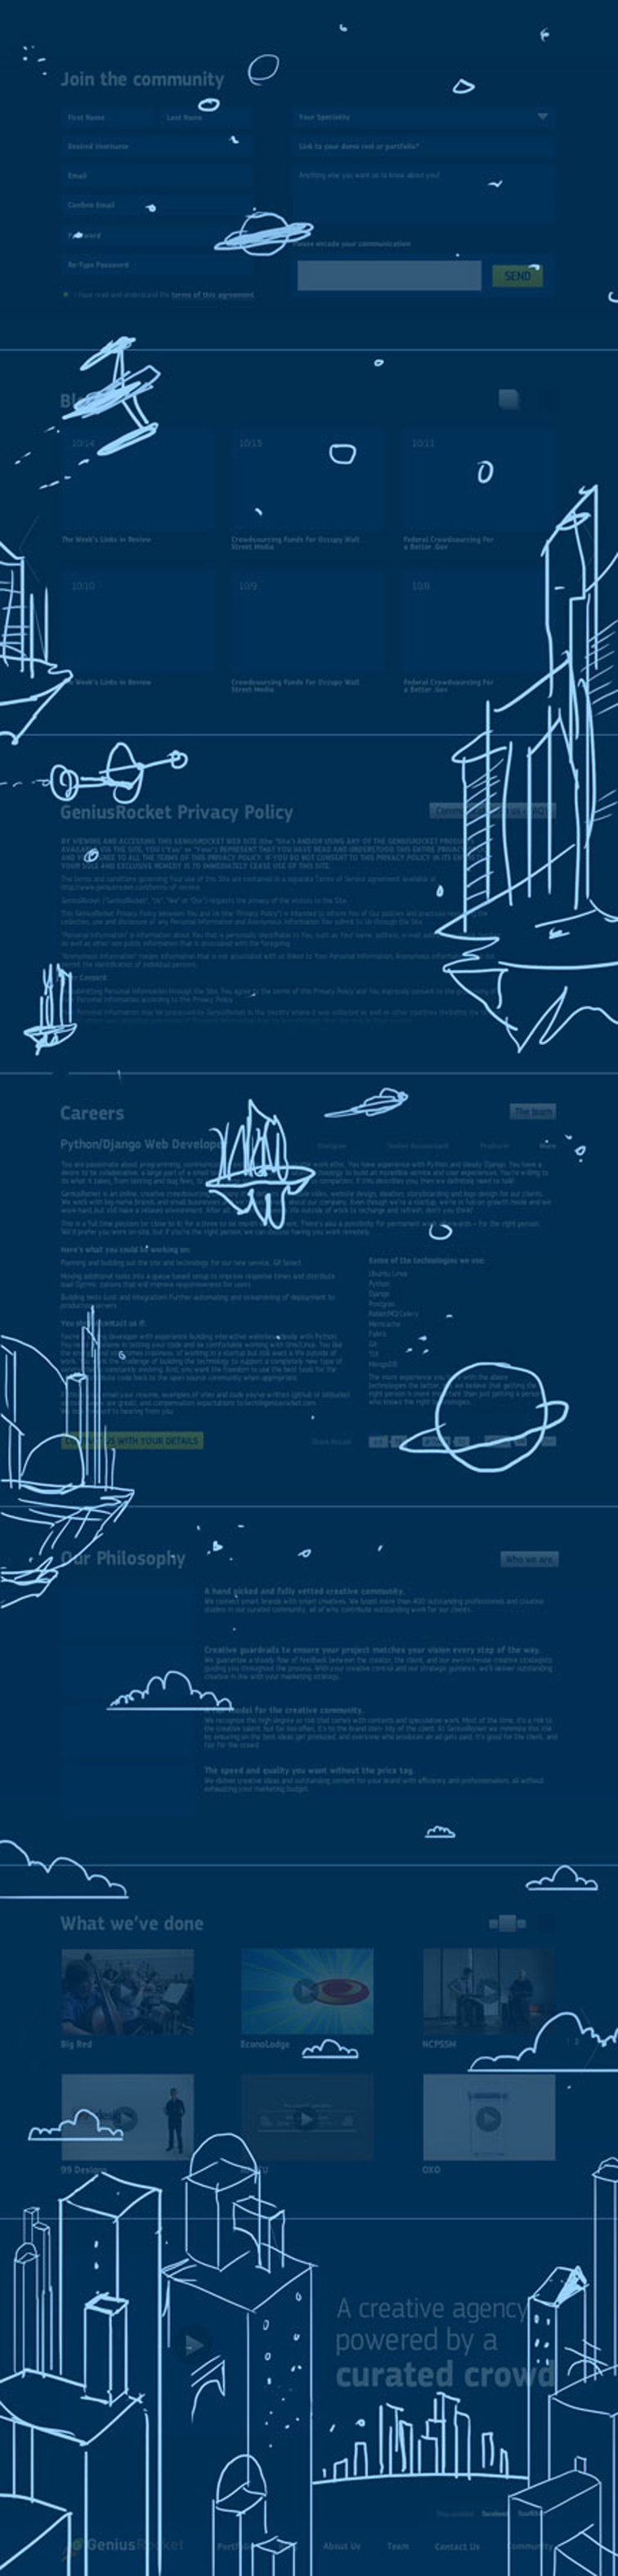 GeniusRocket Website Redesign 2300